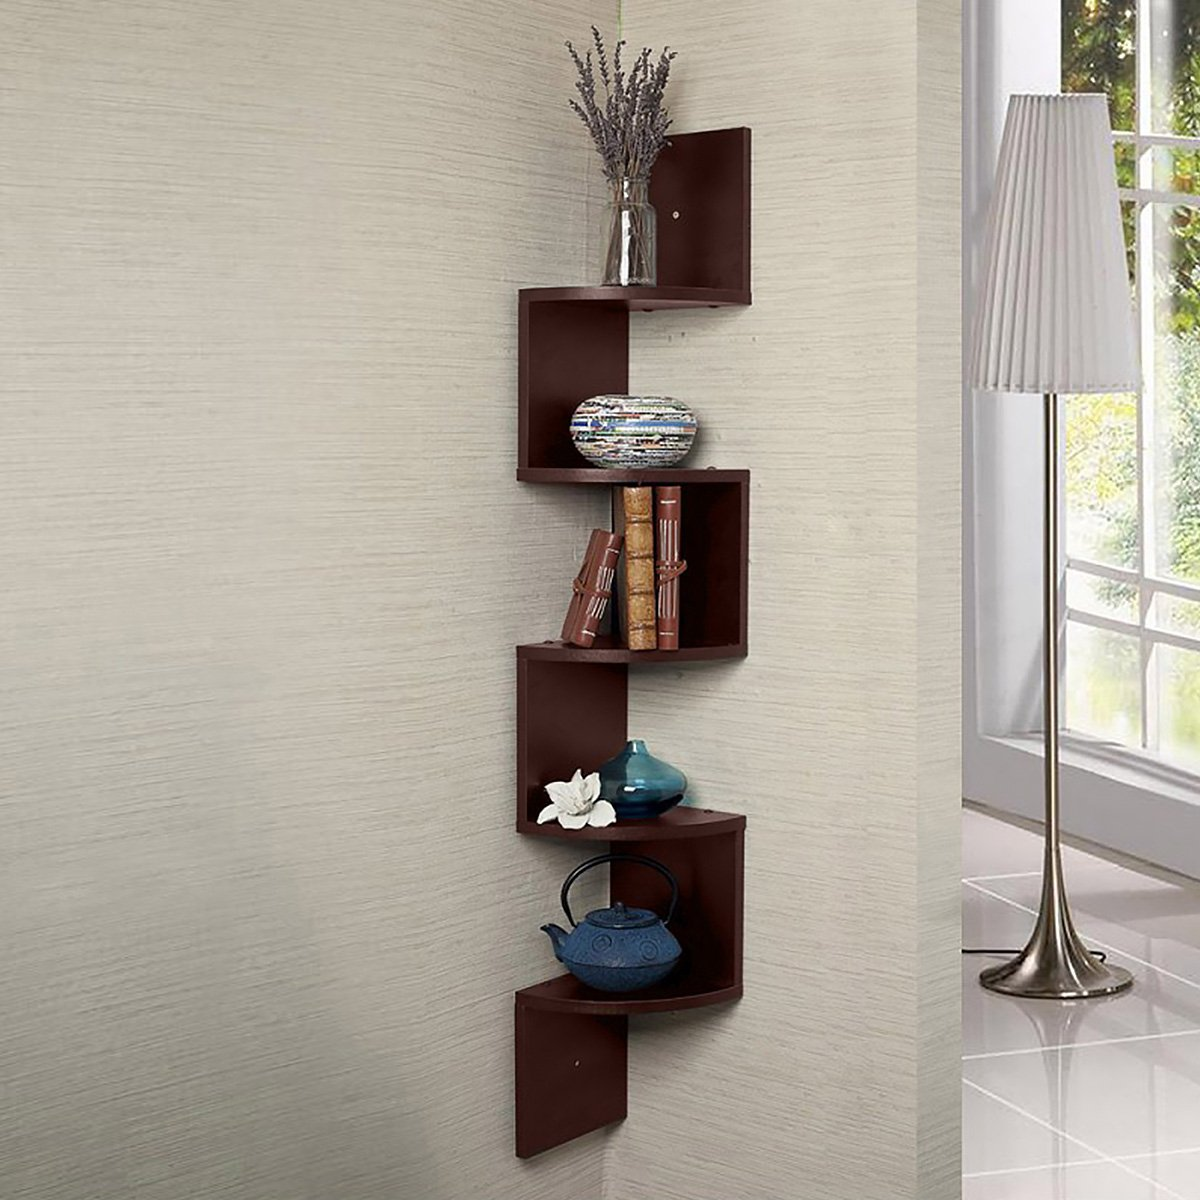 Zigzag Large Corner Wall Mount Display Shelf  - Brown